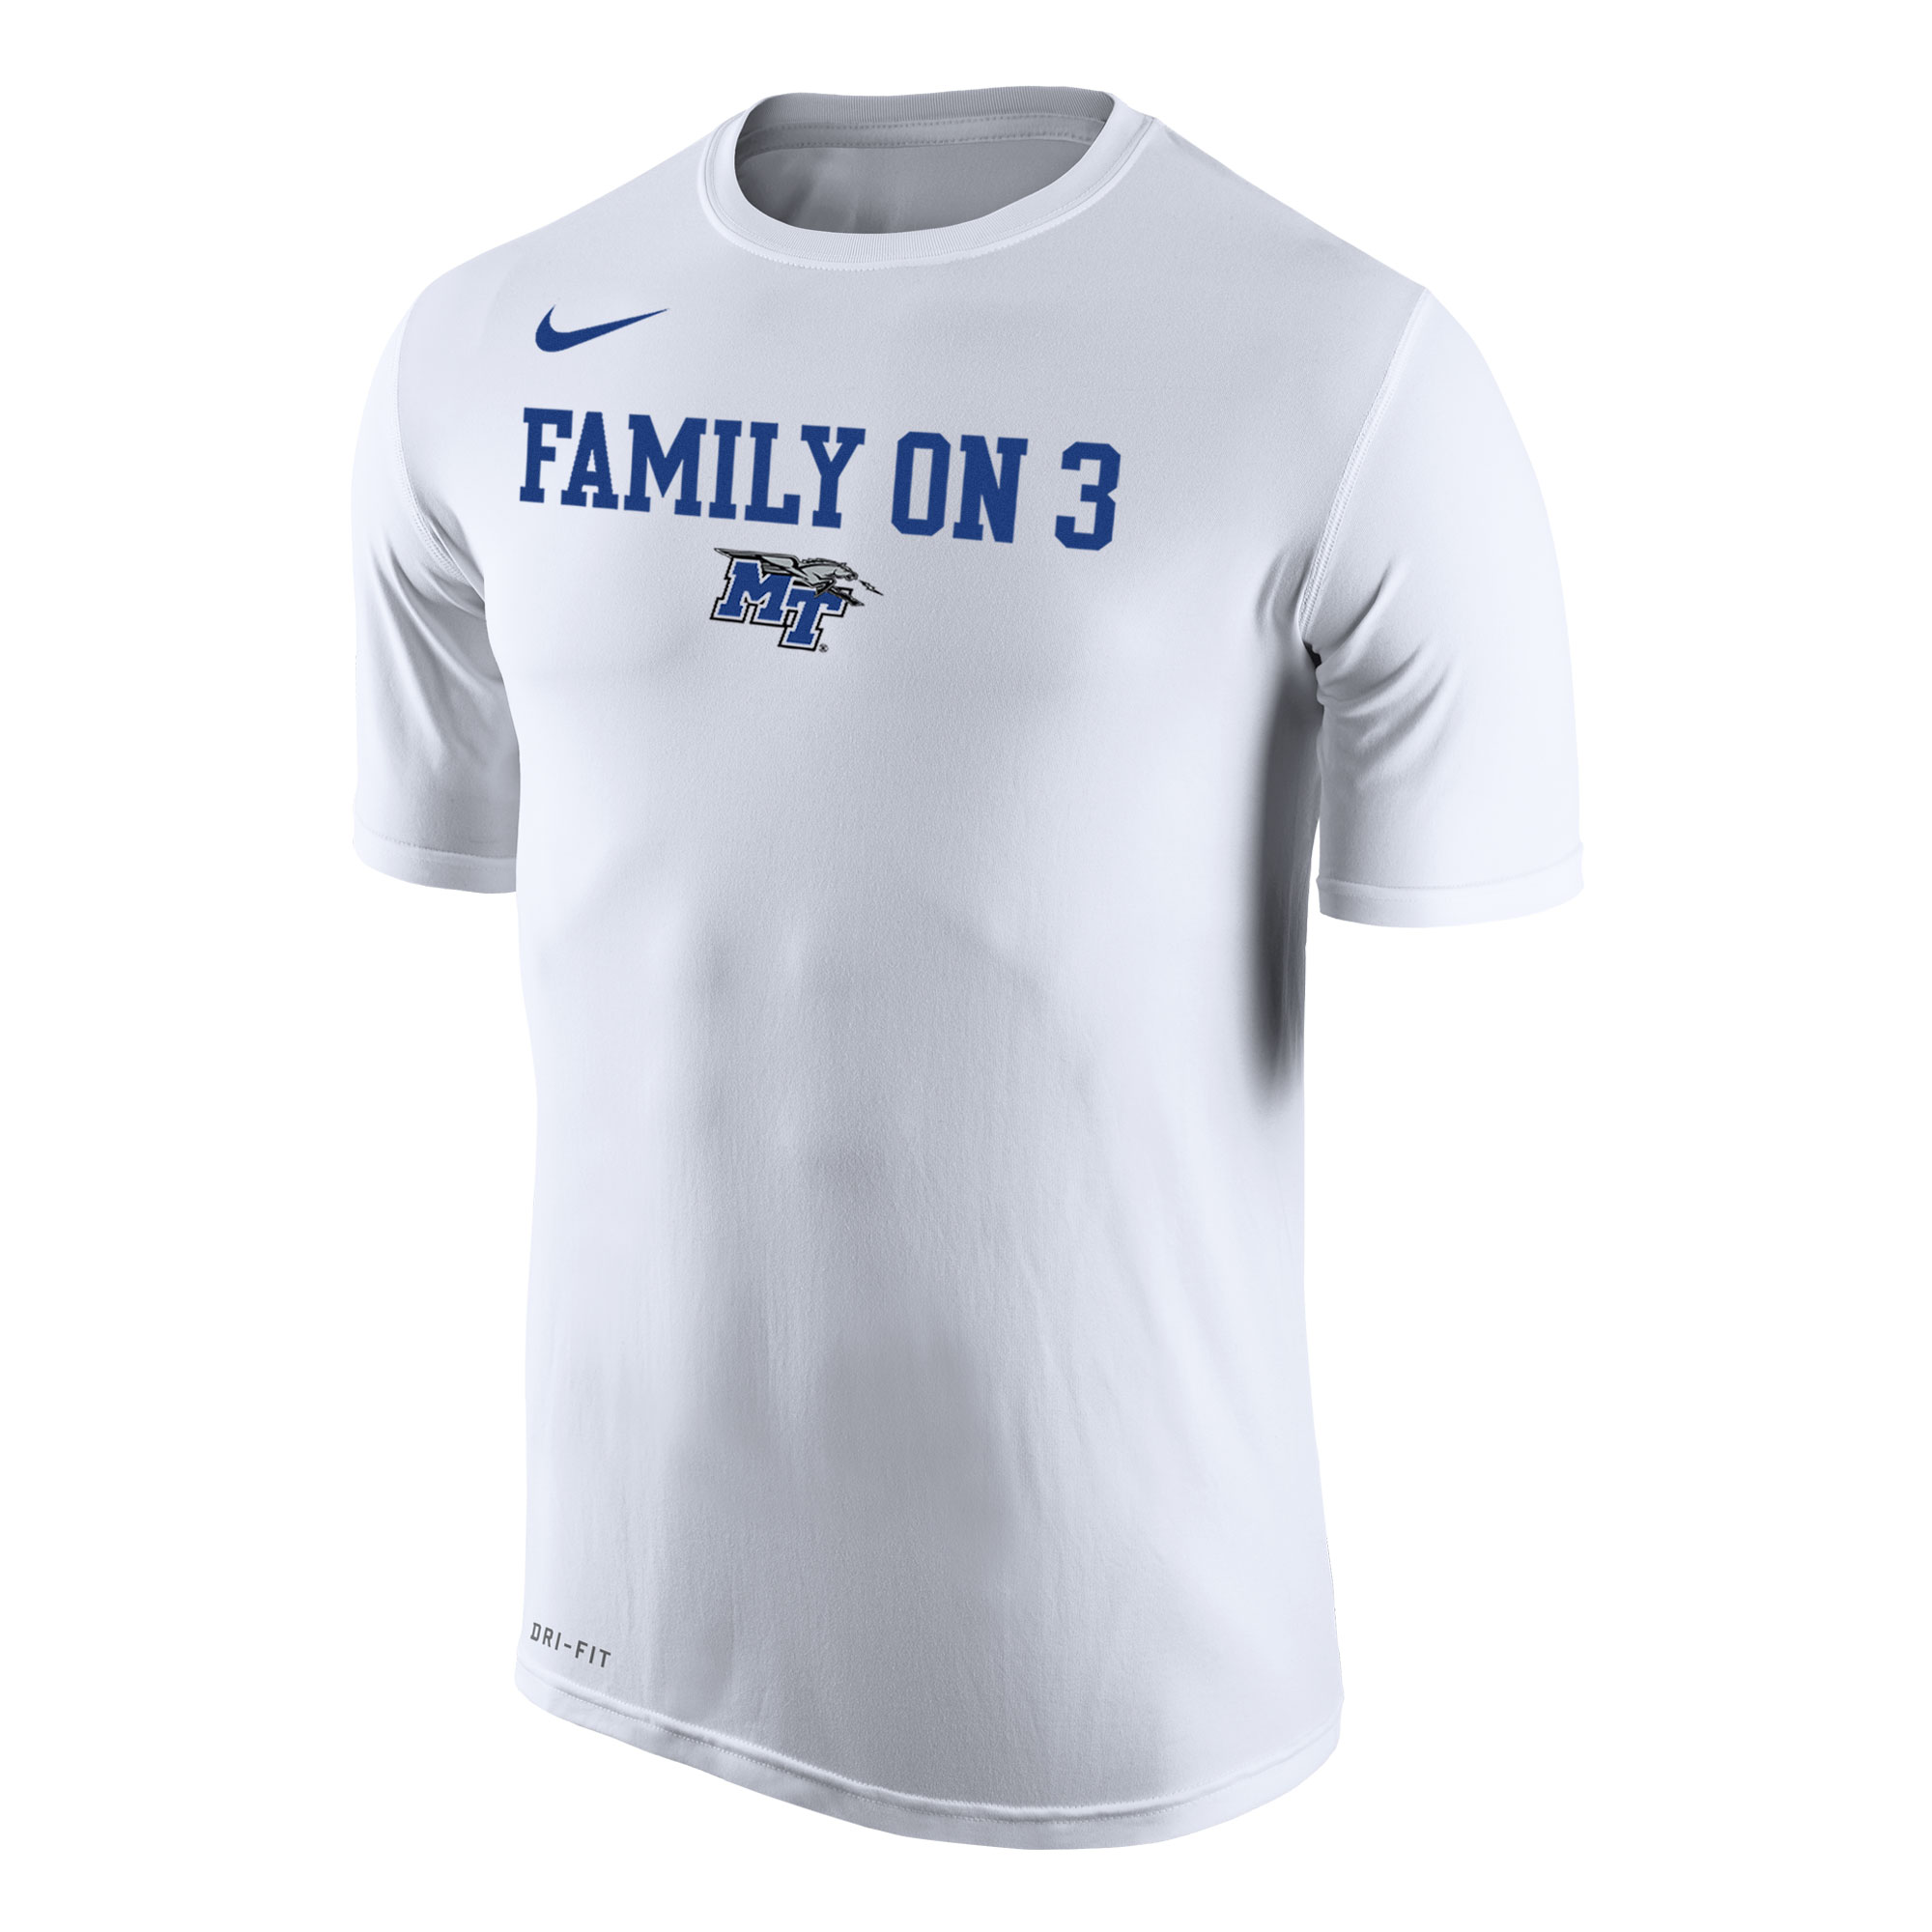 MT Family on 3 Nike® DriFit Shirt